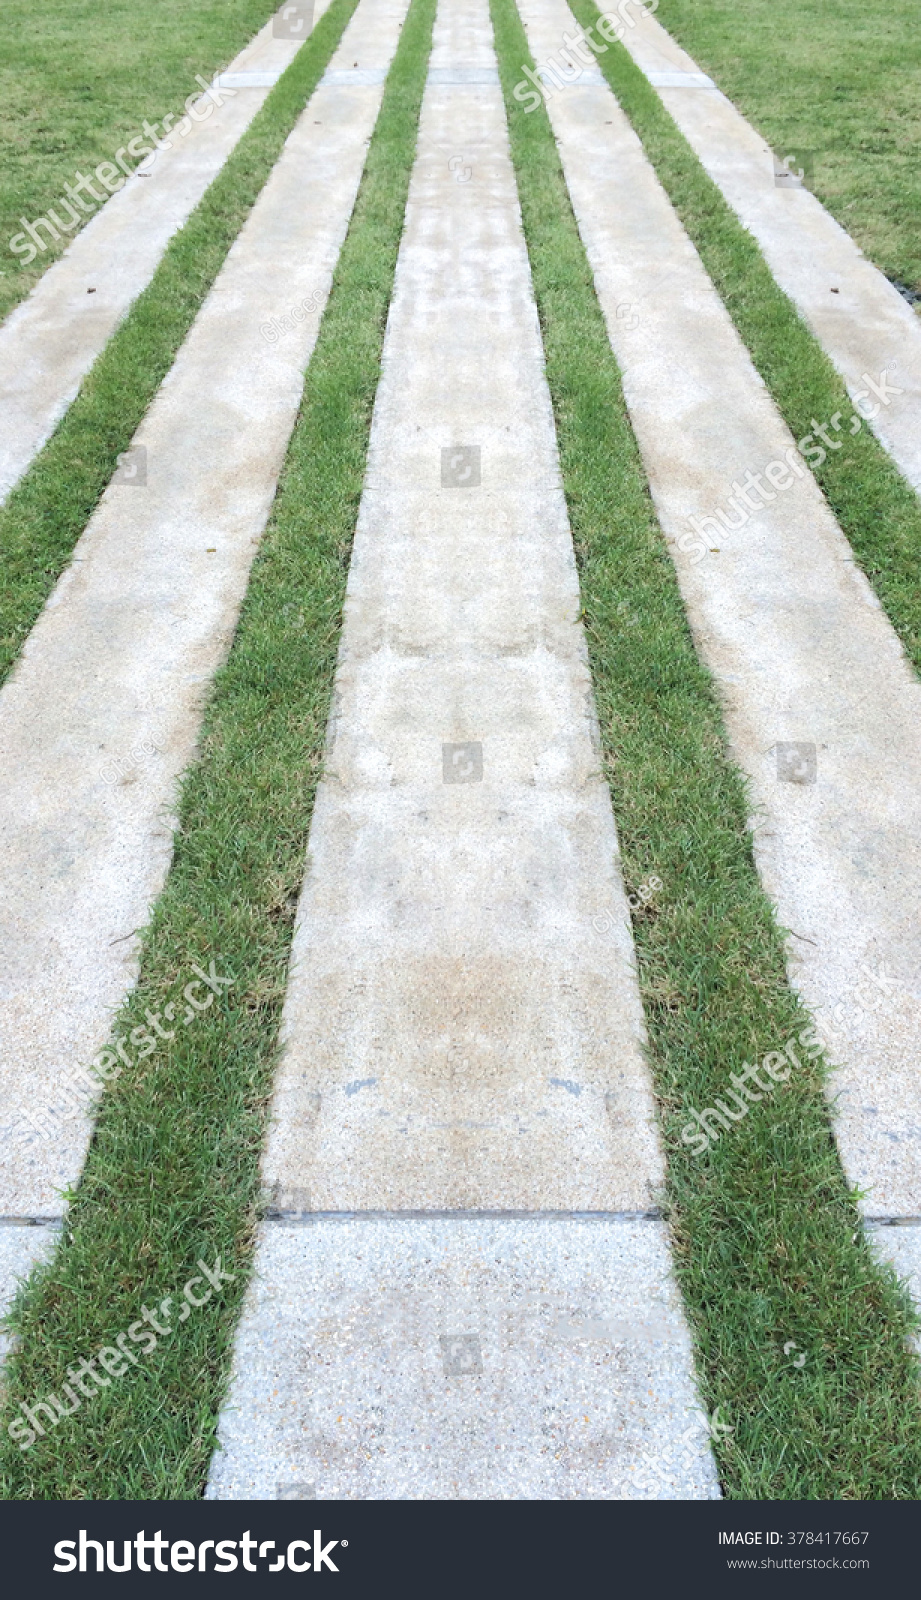 Modern Gardening Design. Perspective View Of Marble Brick Stone Flooring  Tiles Square Pattern On The